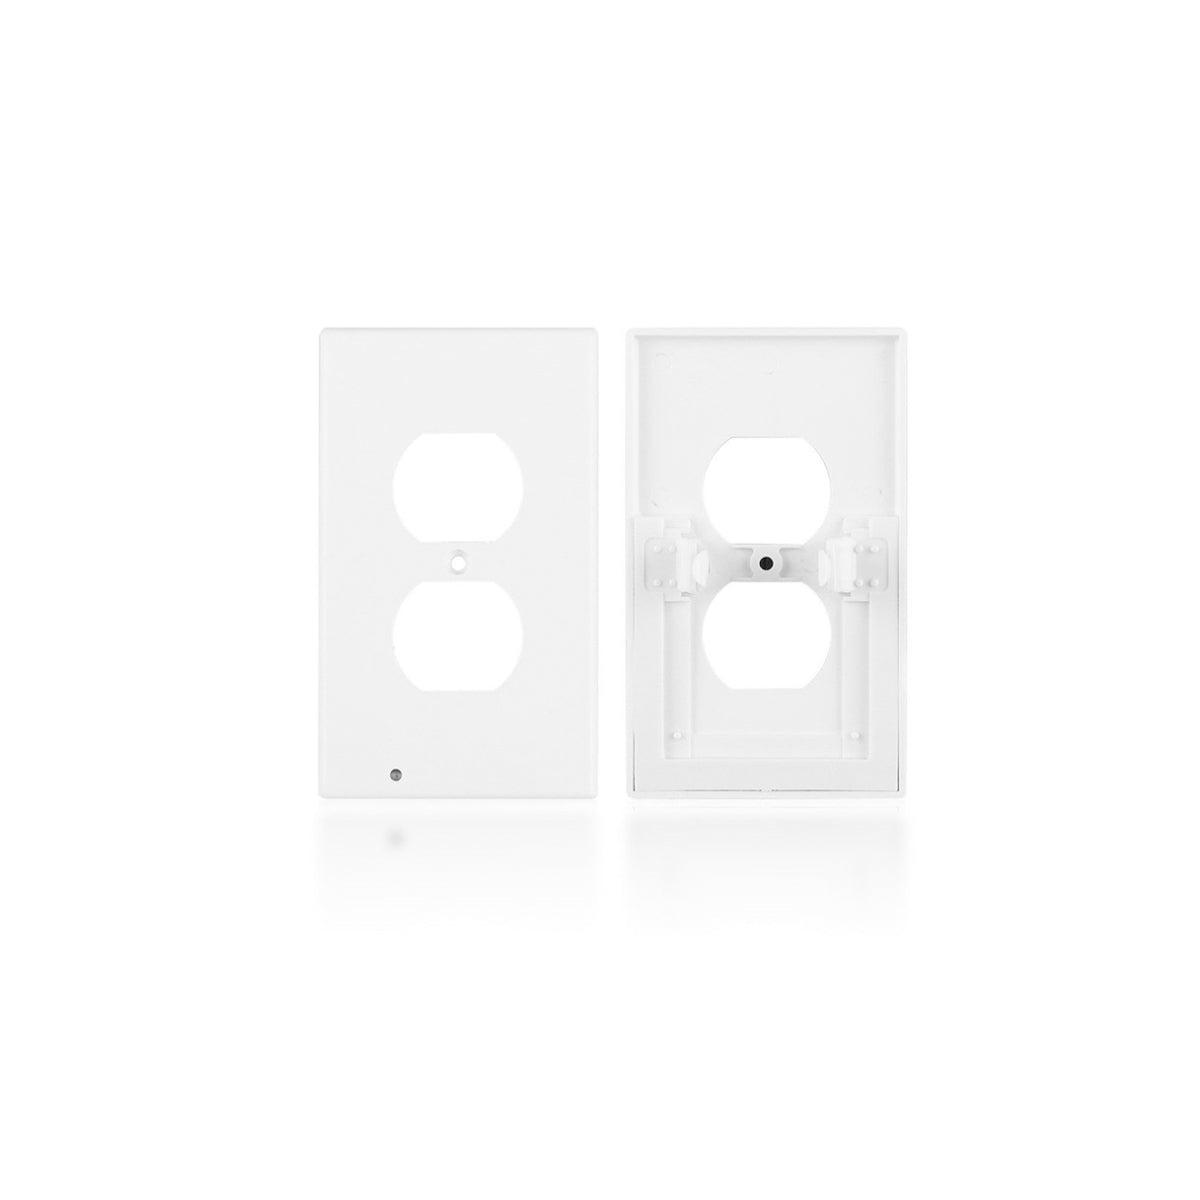 shopify-Path Lighter Auto Motion Wall Plate LED Light  2- PACK-4